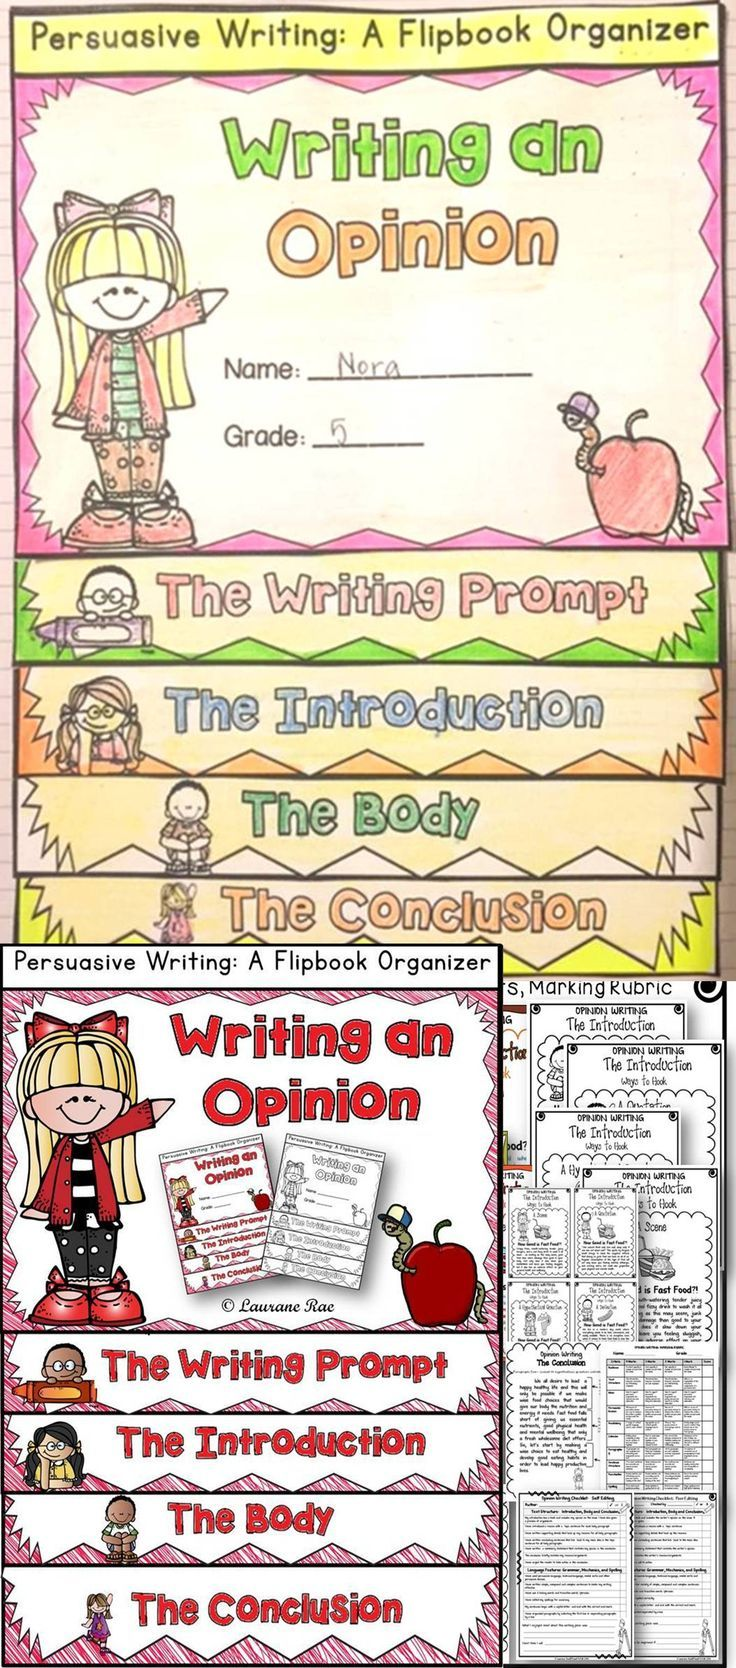 Adhering to structure specific to a writing genre is necessary to generate a cohesive whole. This flipbook will scaffold the structural components of an opinion piece at every stage of the writing process. $